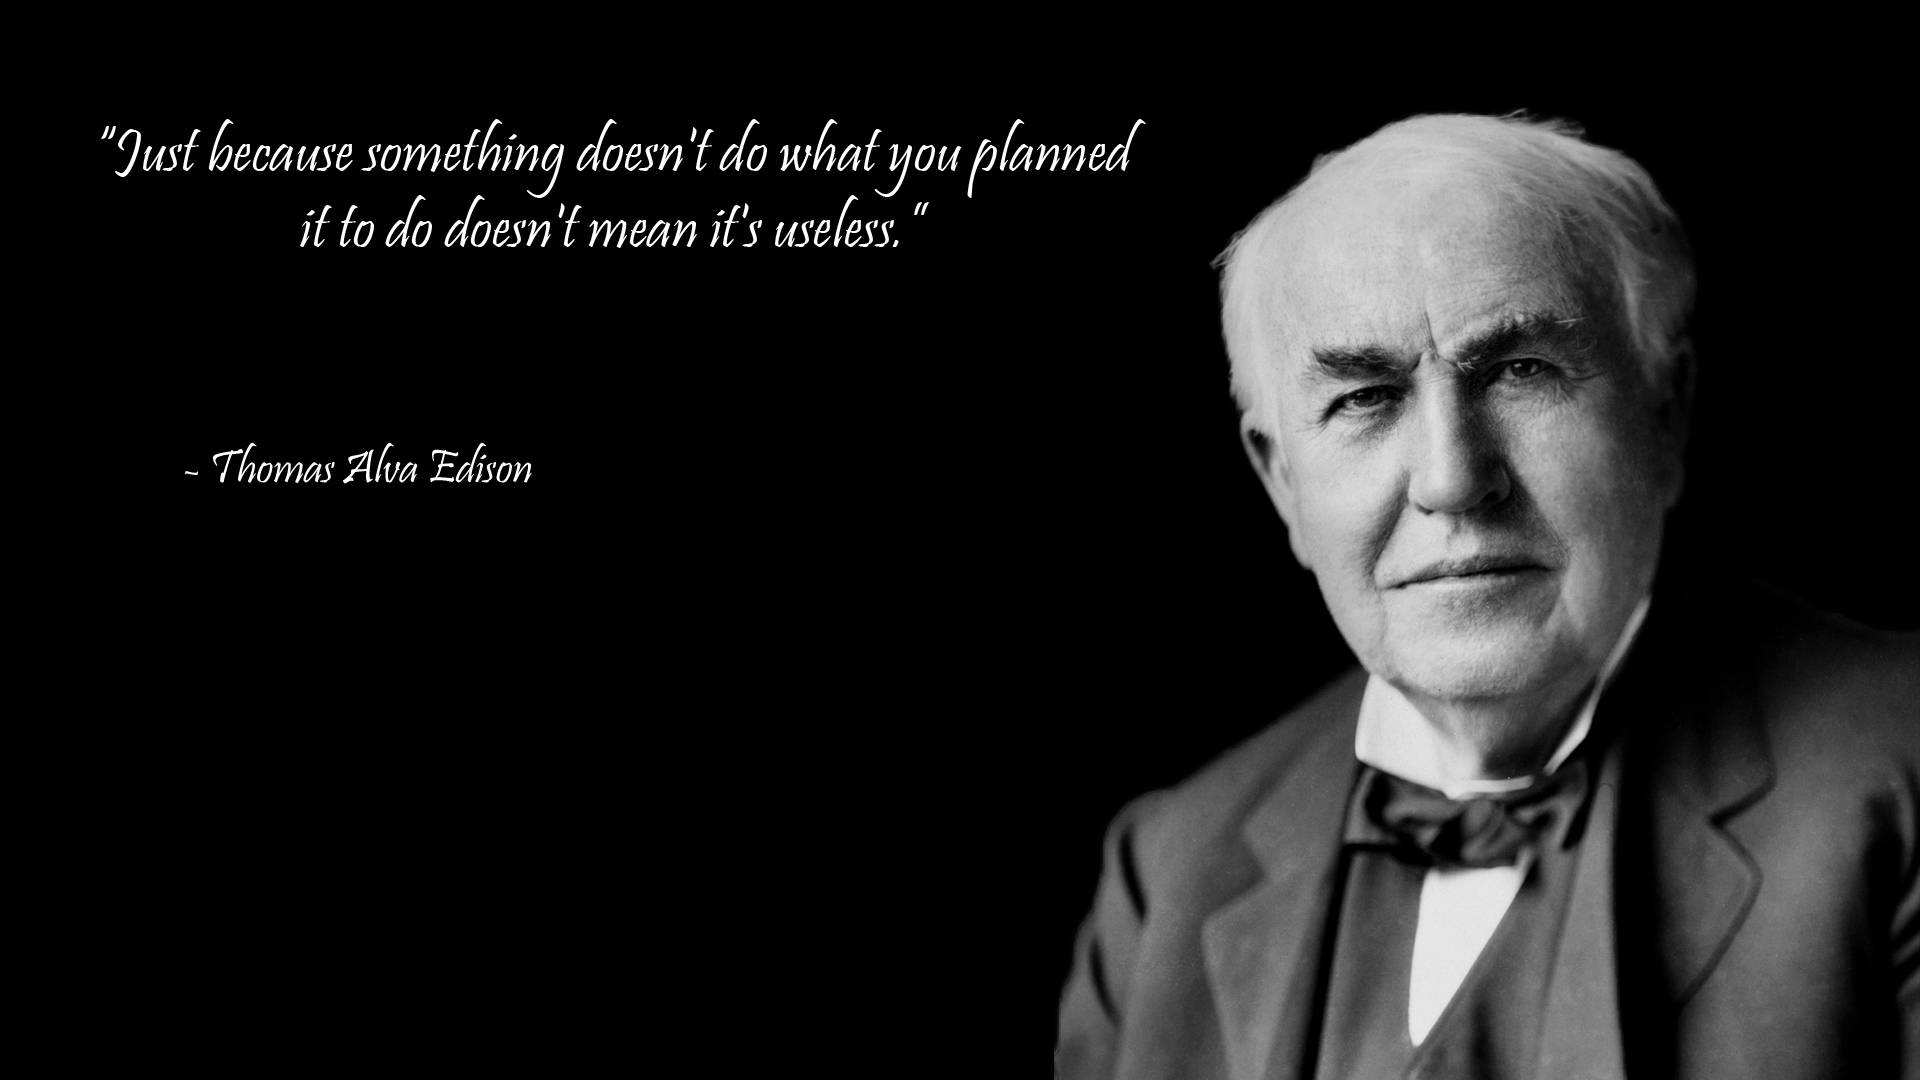 Thomas Edison wallpaper 1920x1080 65203 1920x1080